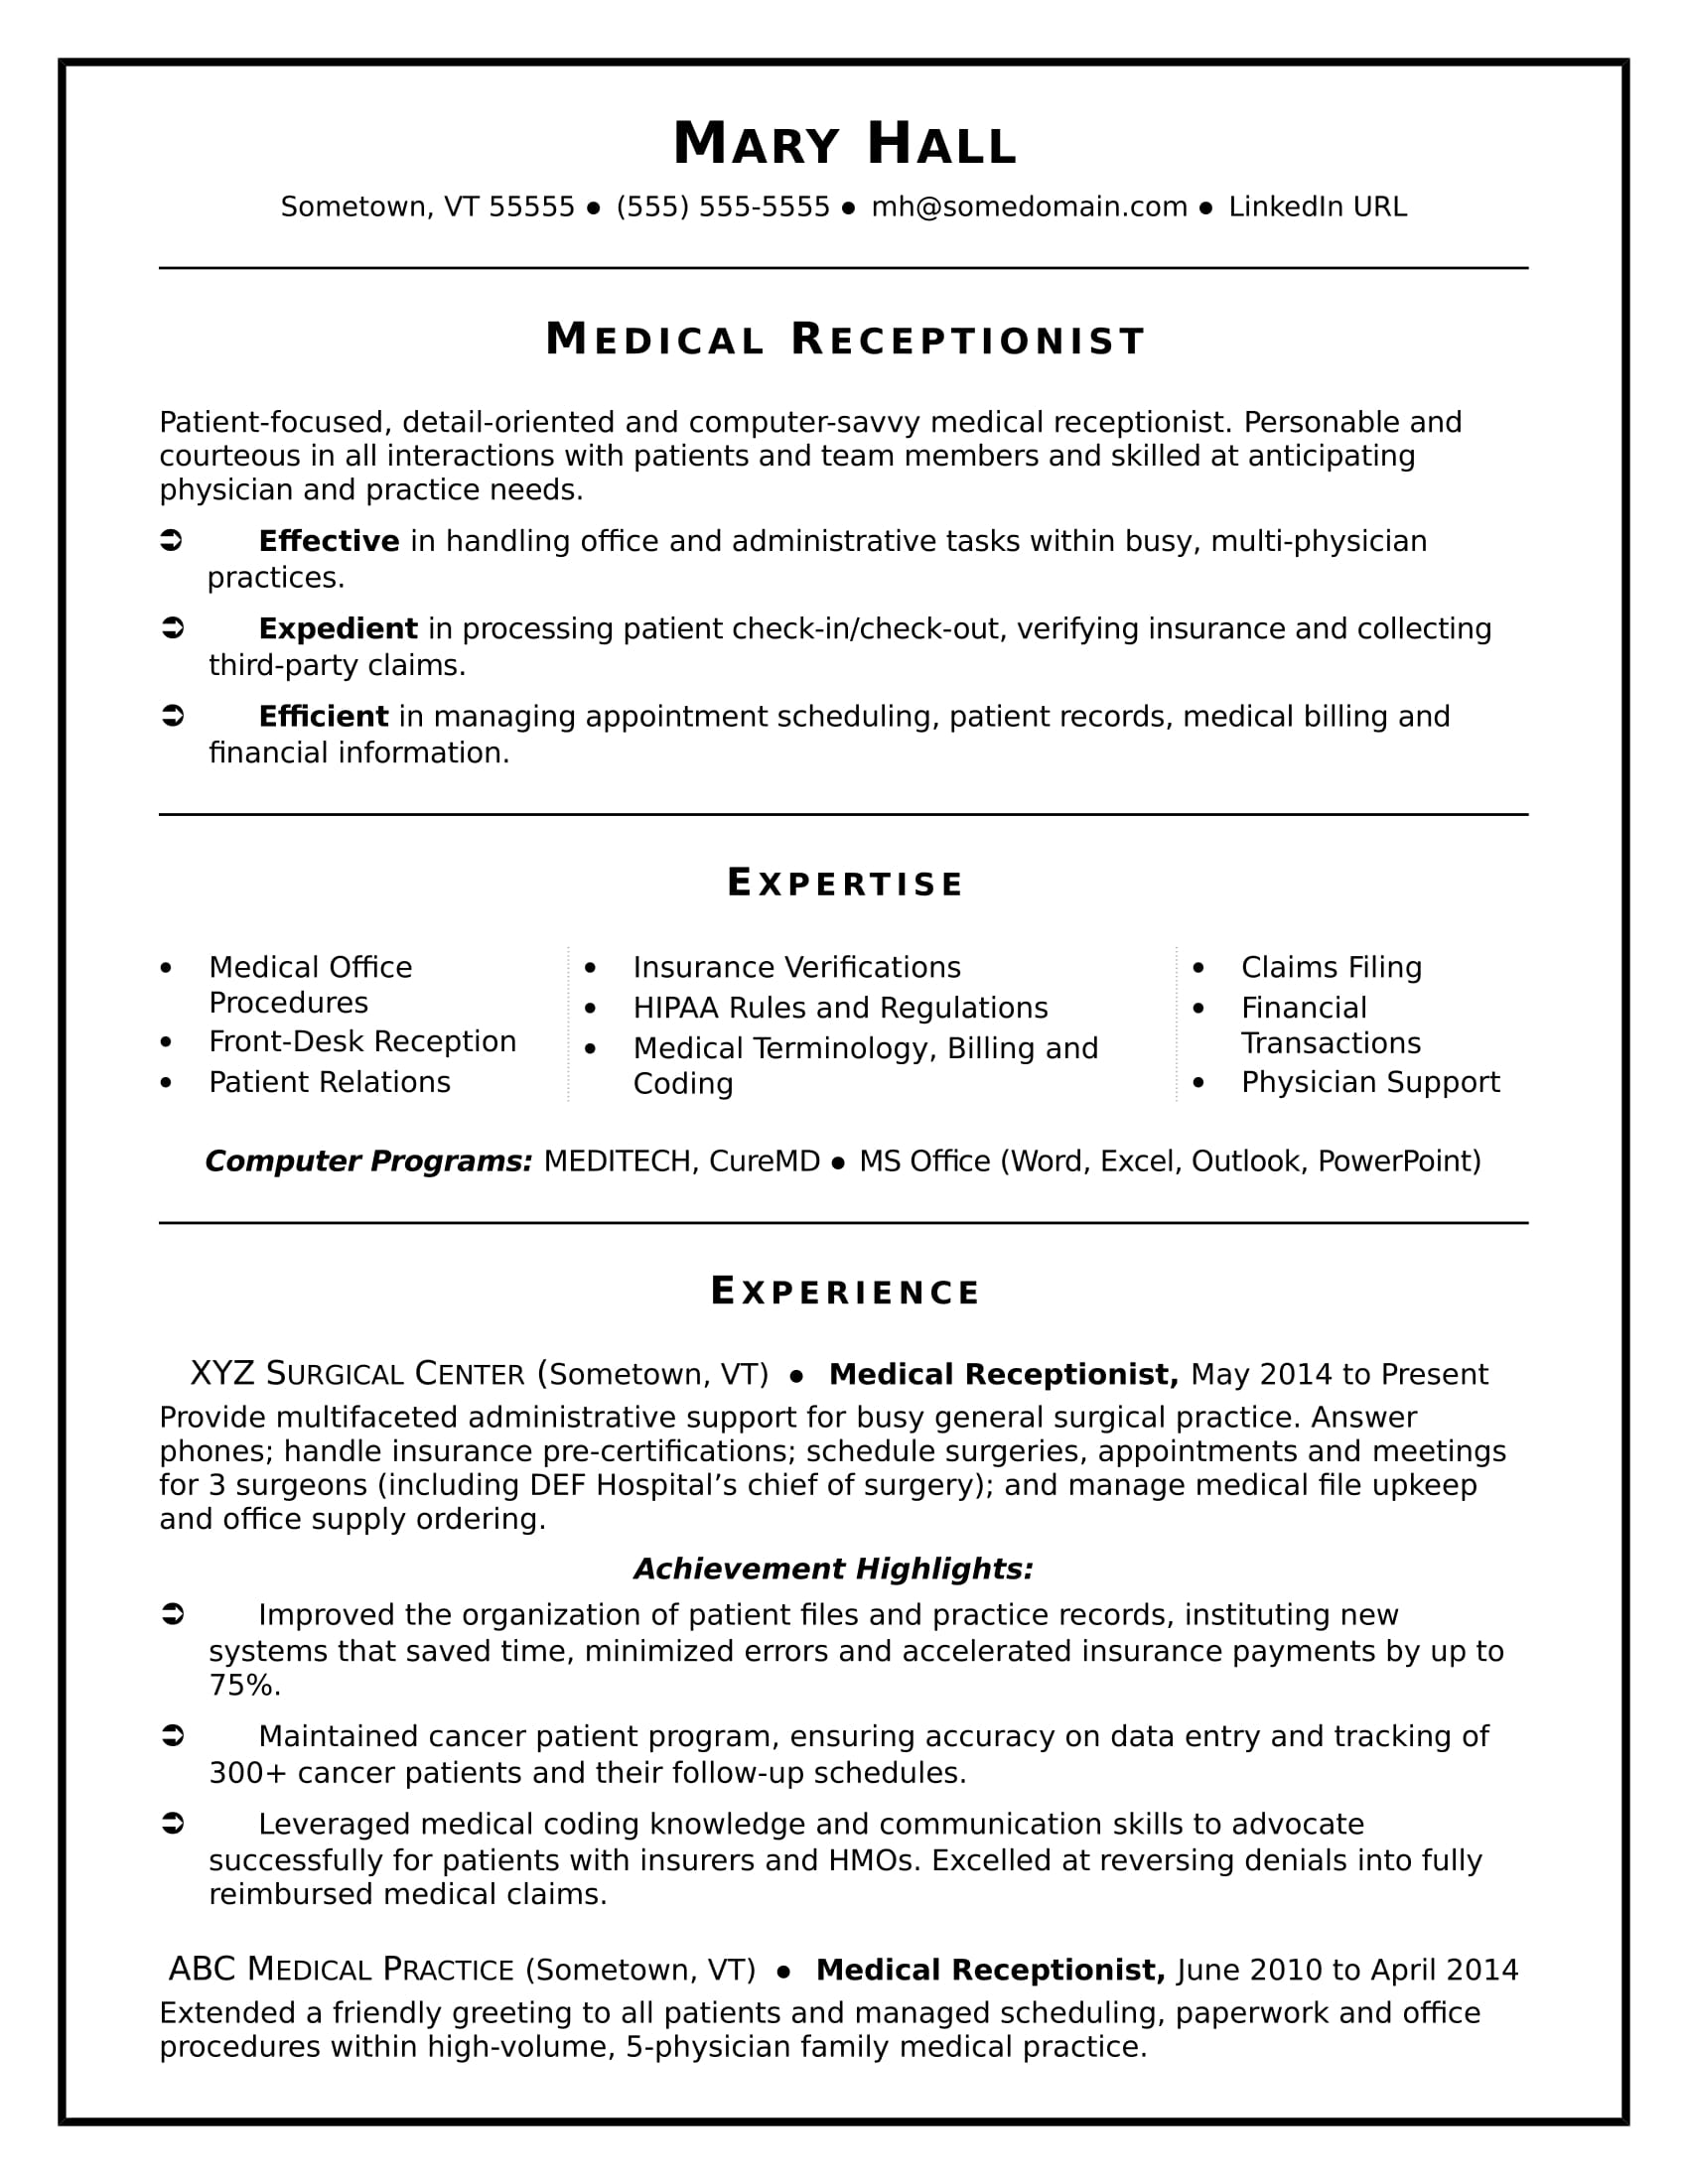 Medical Receptionist Resume Sample  Medical Resume Examples